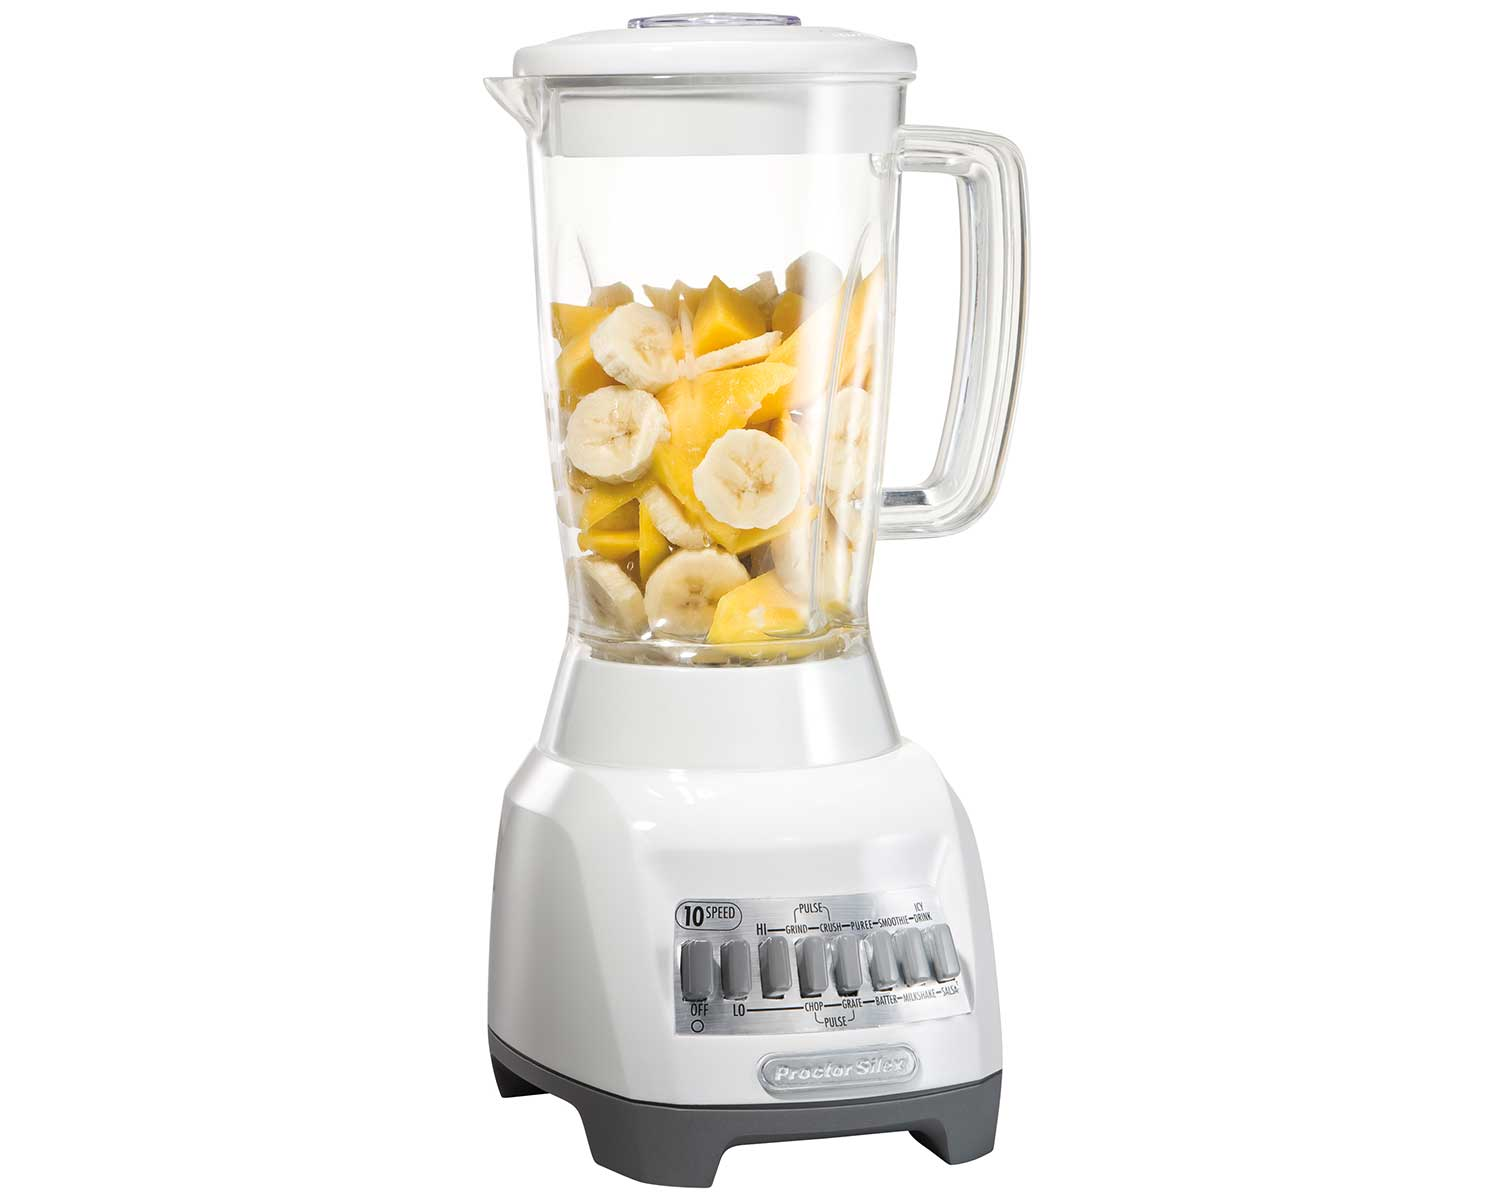 10 Speed Blender (white)-50124